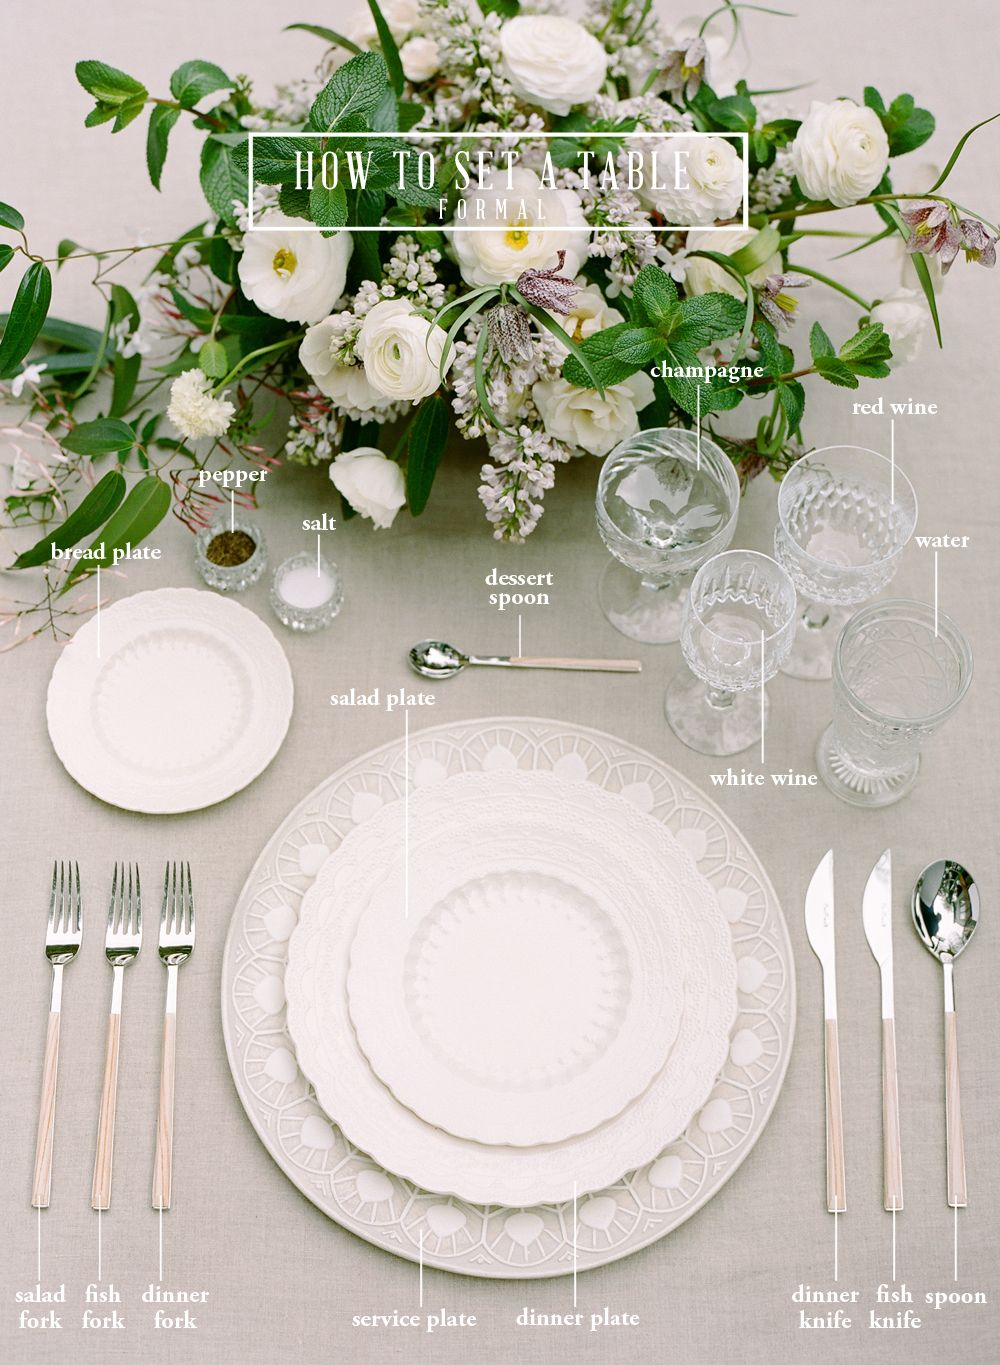 Table Place Settings for Every Occasion   Hostessing & Entertaining ...